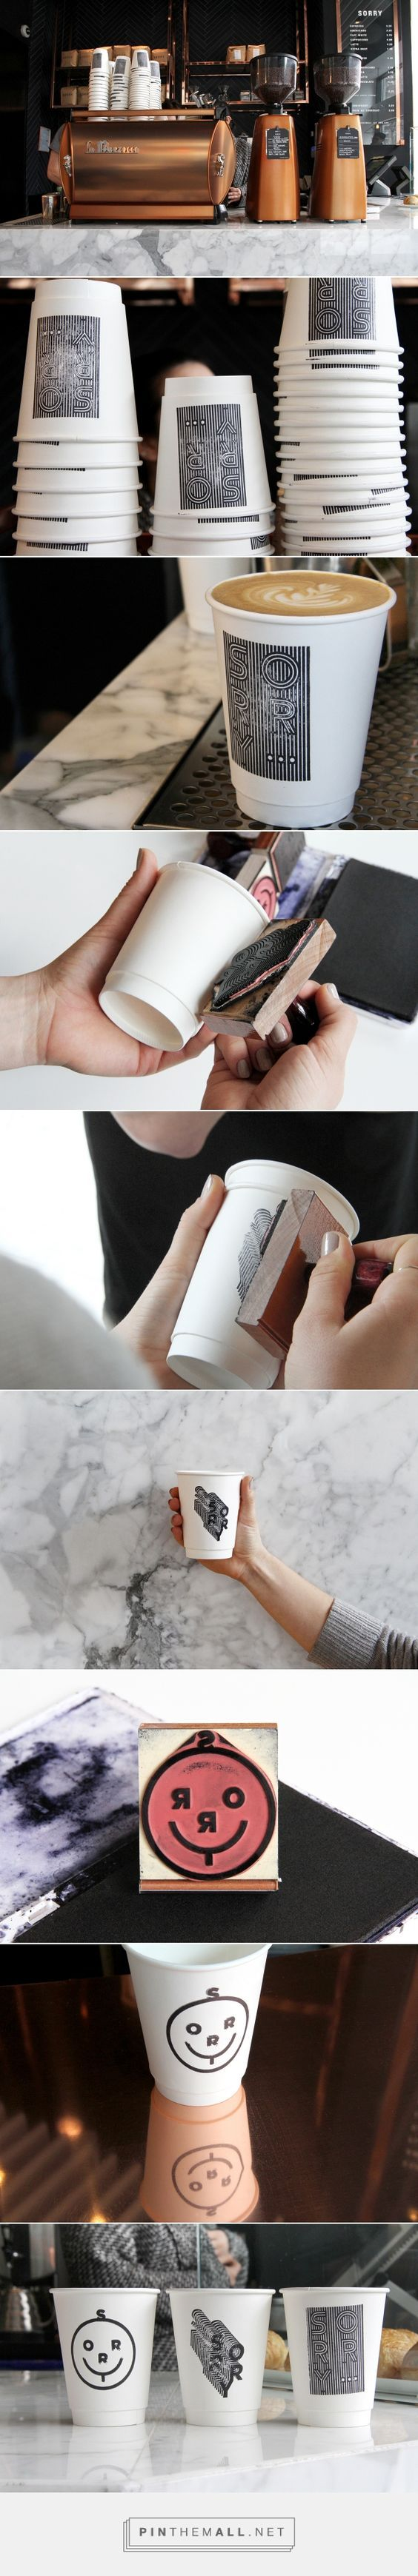 Art direction, branding and packaging design for Sorry Coffee Co on Behance by Ben Johnston Toronto, Ontario curated by Packaging Diva PD. Clever stamp designs for Kit & Ace's Sorry Coffee Co in Toronto Photography by Warren Keefe.: